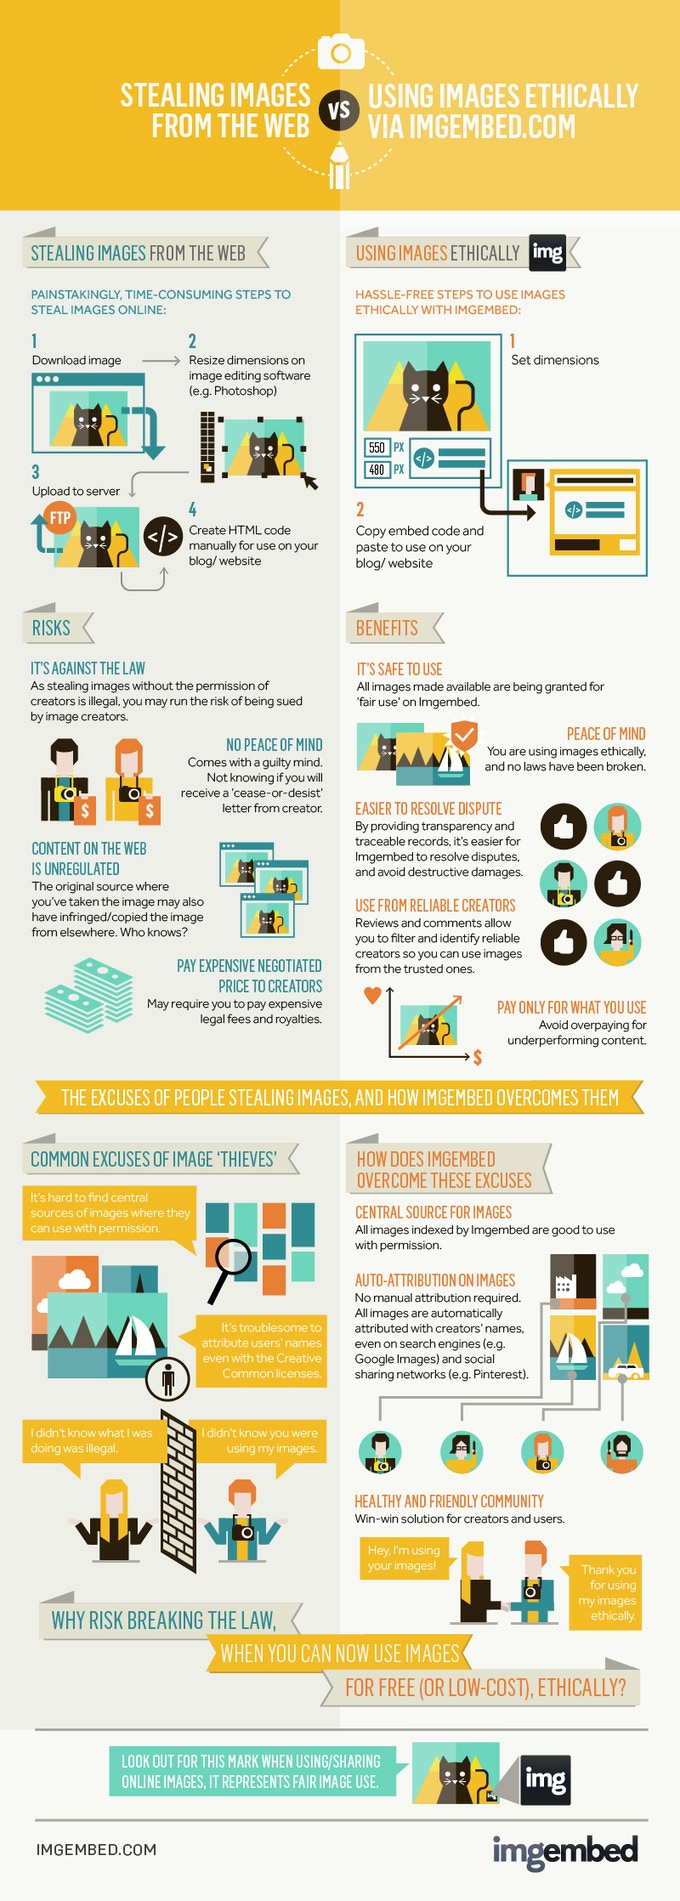 Infographic - IMGembed benefits image owners and users alike